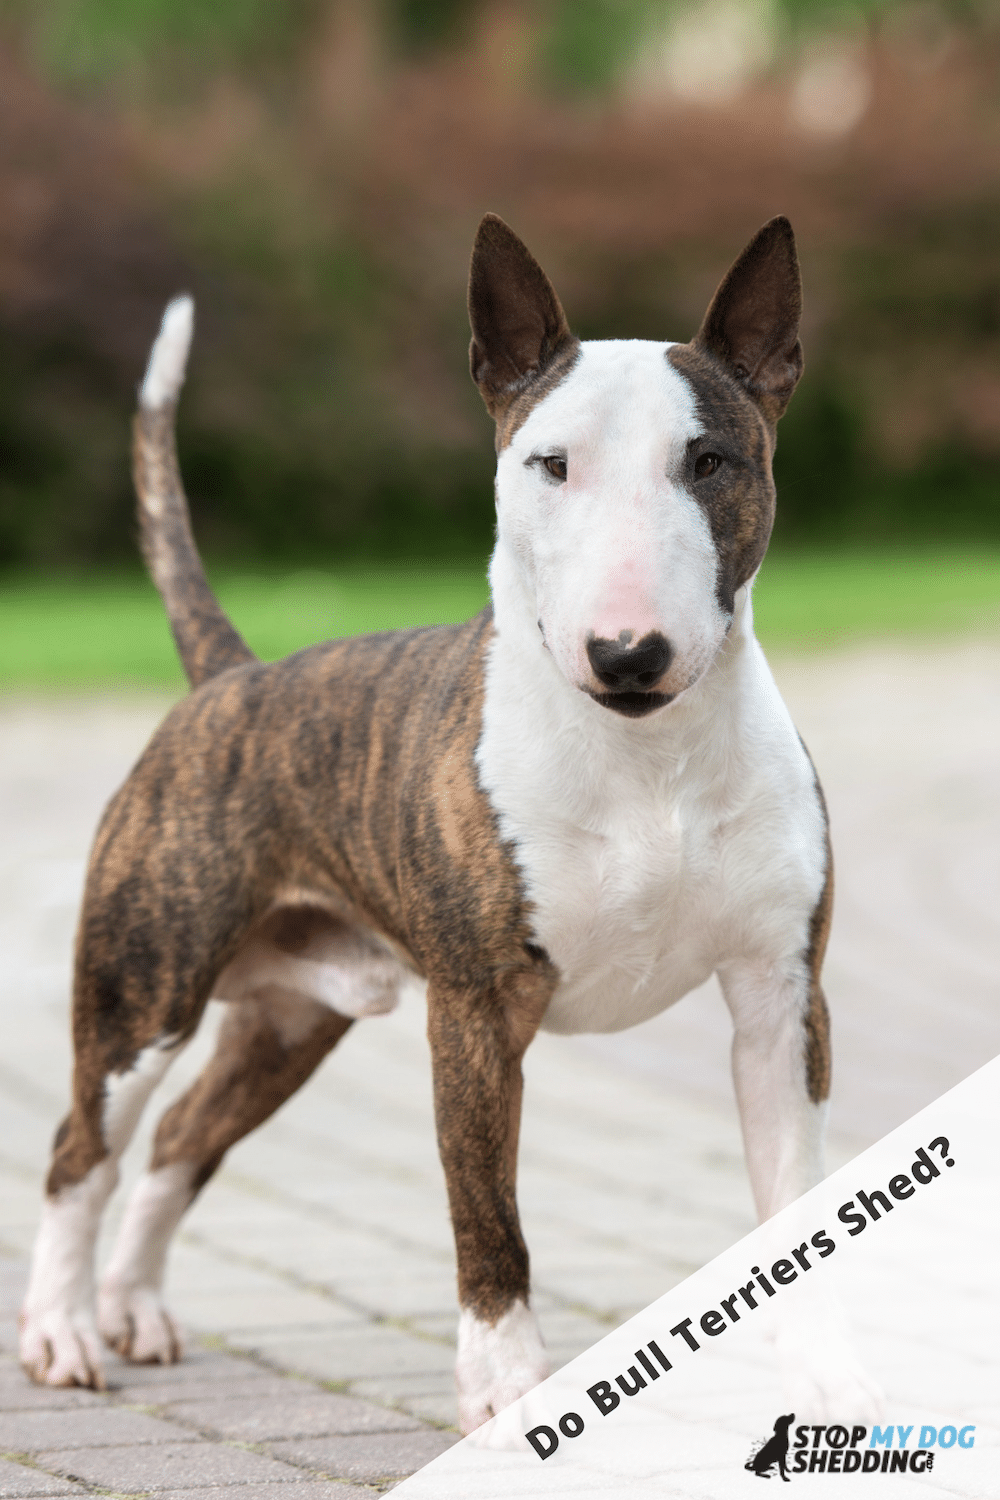 Do Bull Terriers Shed Much?